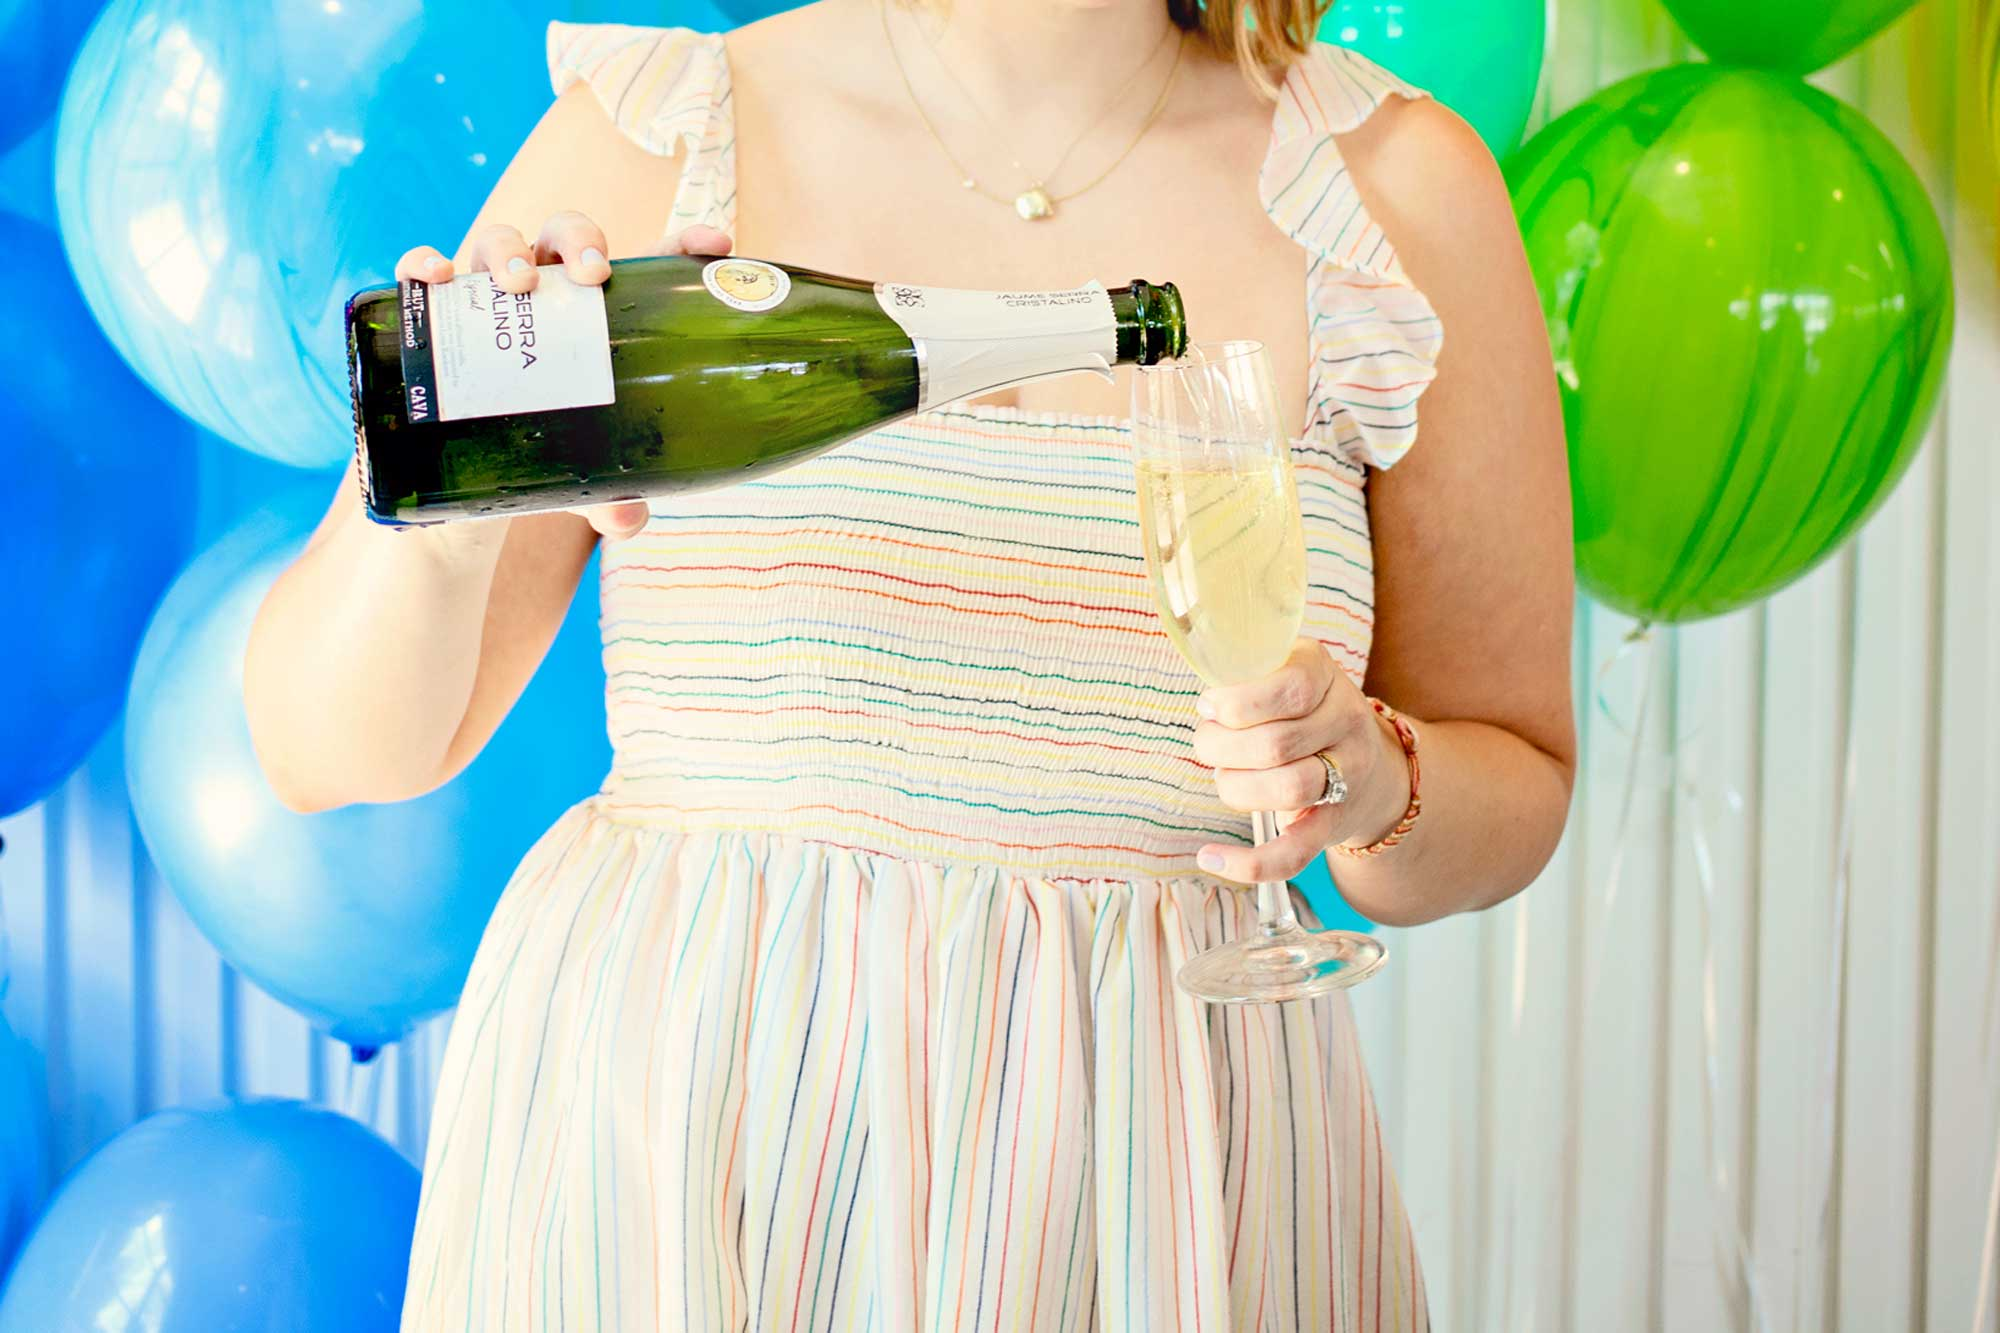 woman in rainbow dress pouring champagne into a flute in front of balloons